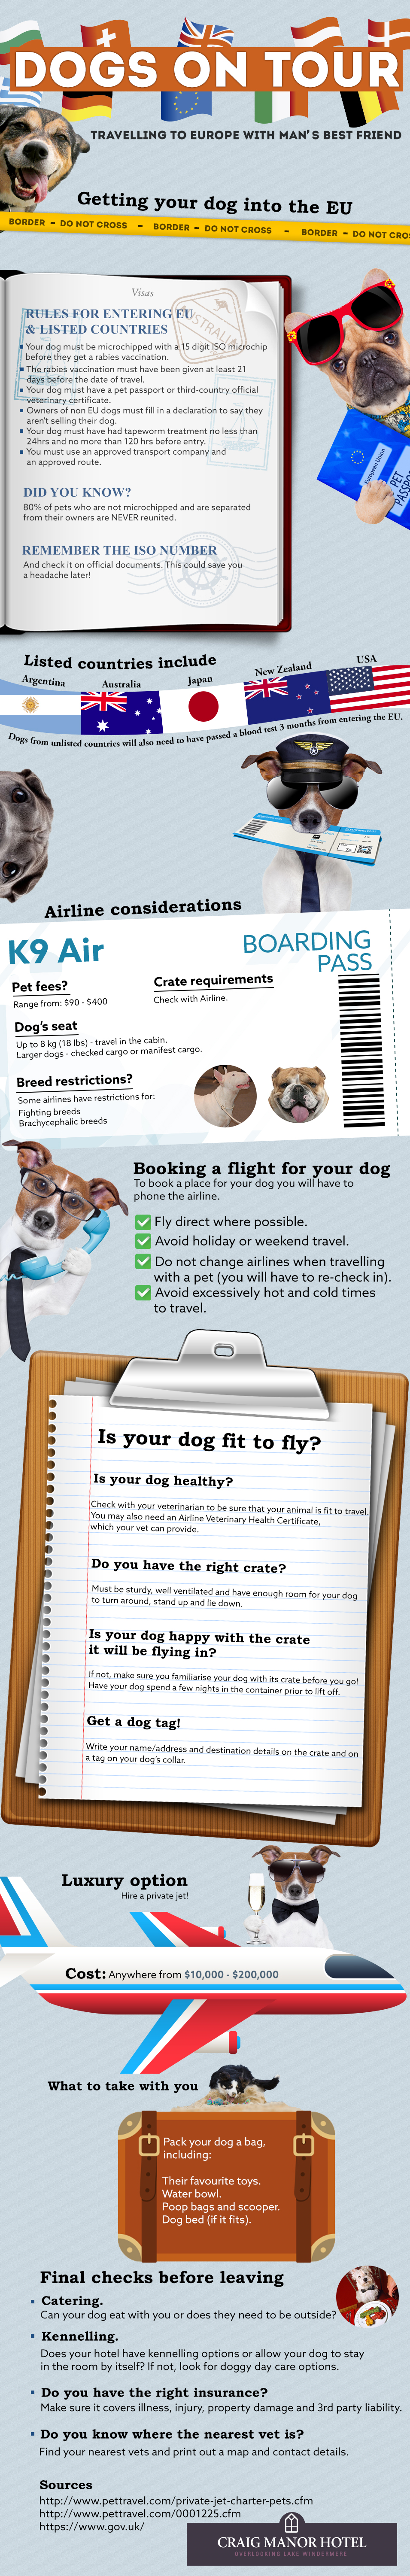 travelling with your dog in europe